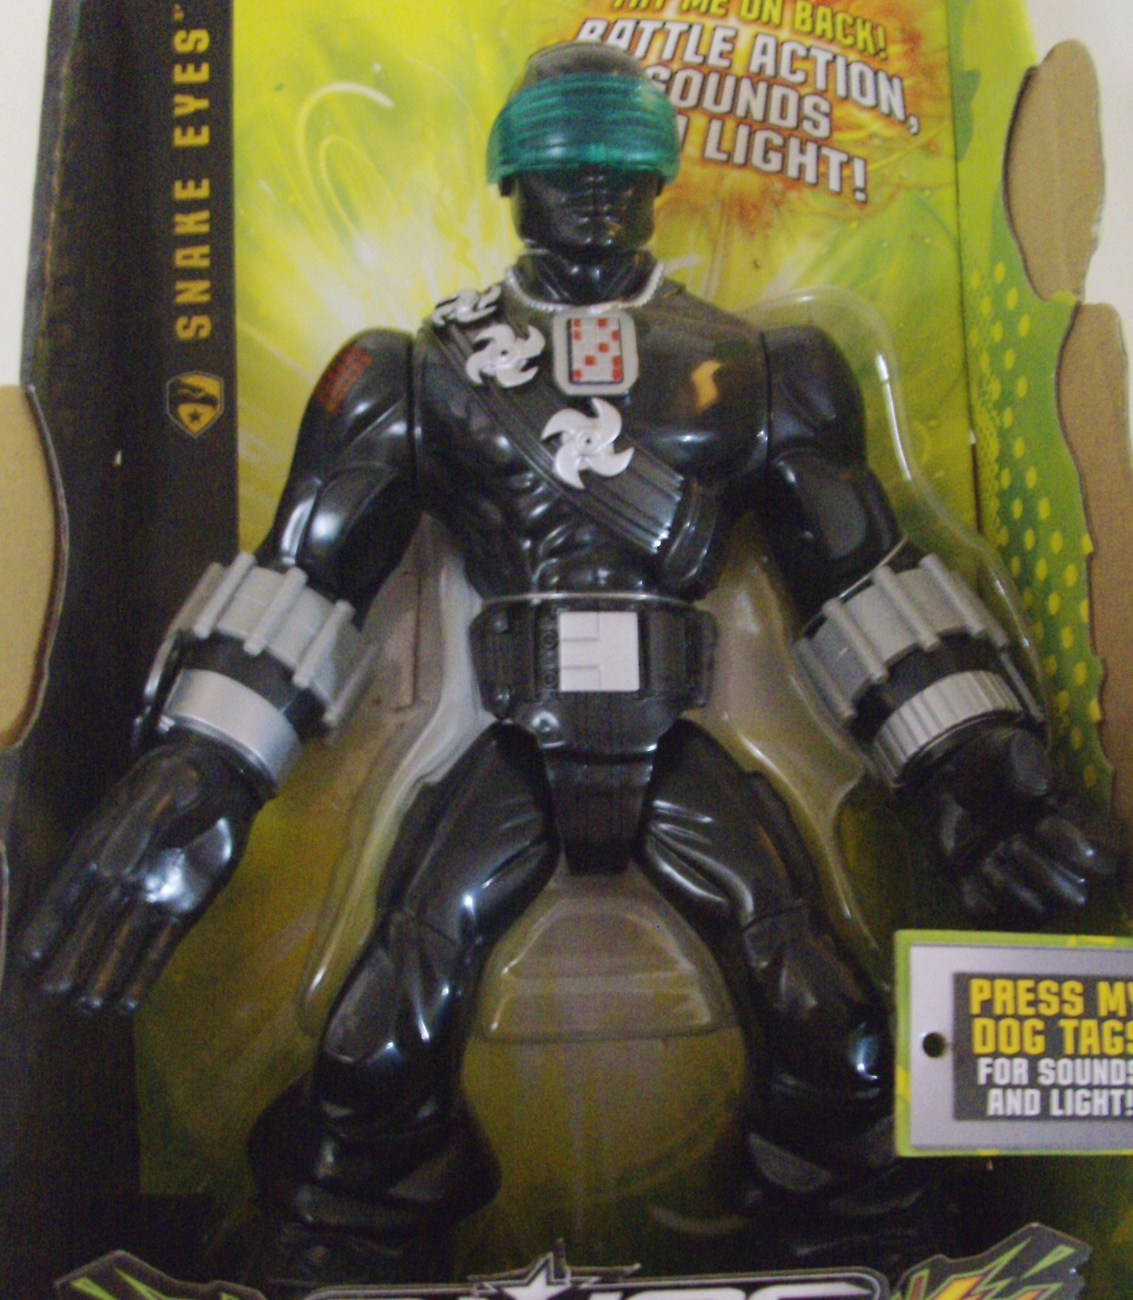 G.I. Joe Tough Troopers Battle Action, Sounds and Light! Snake Eyes Ninja - New